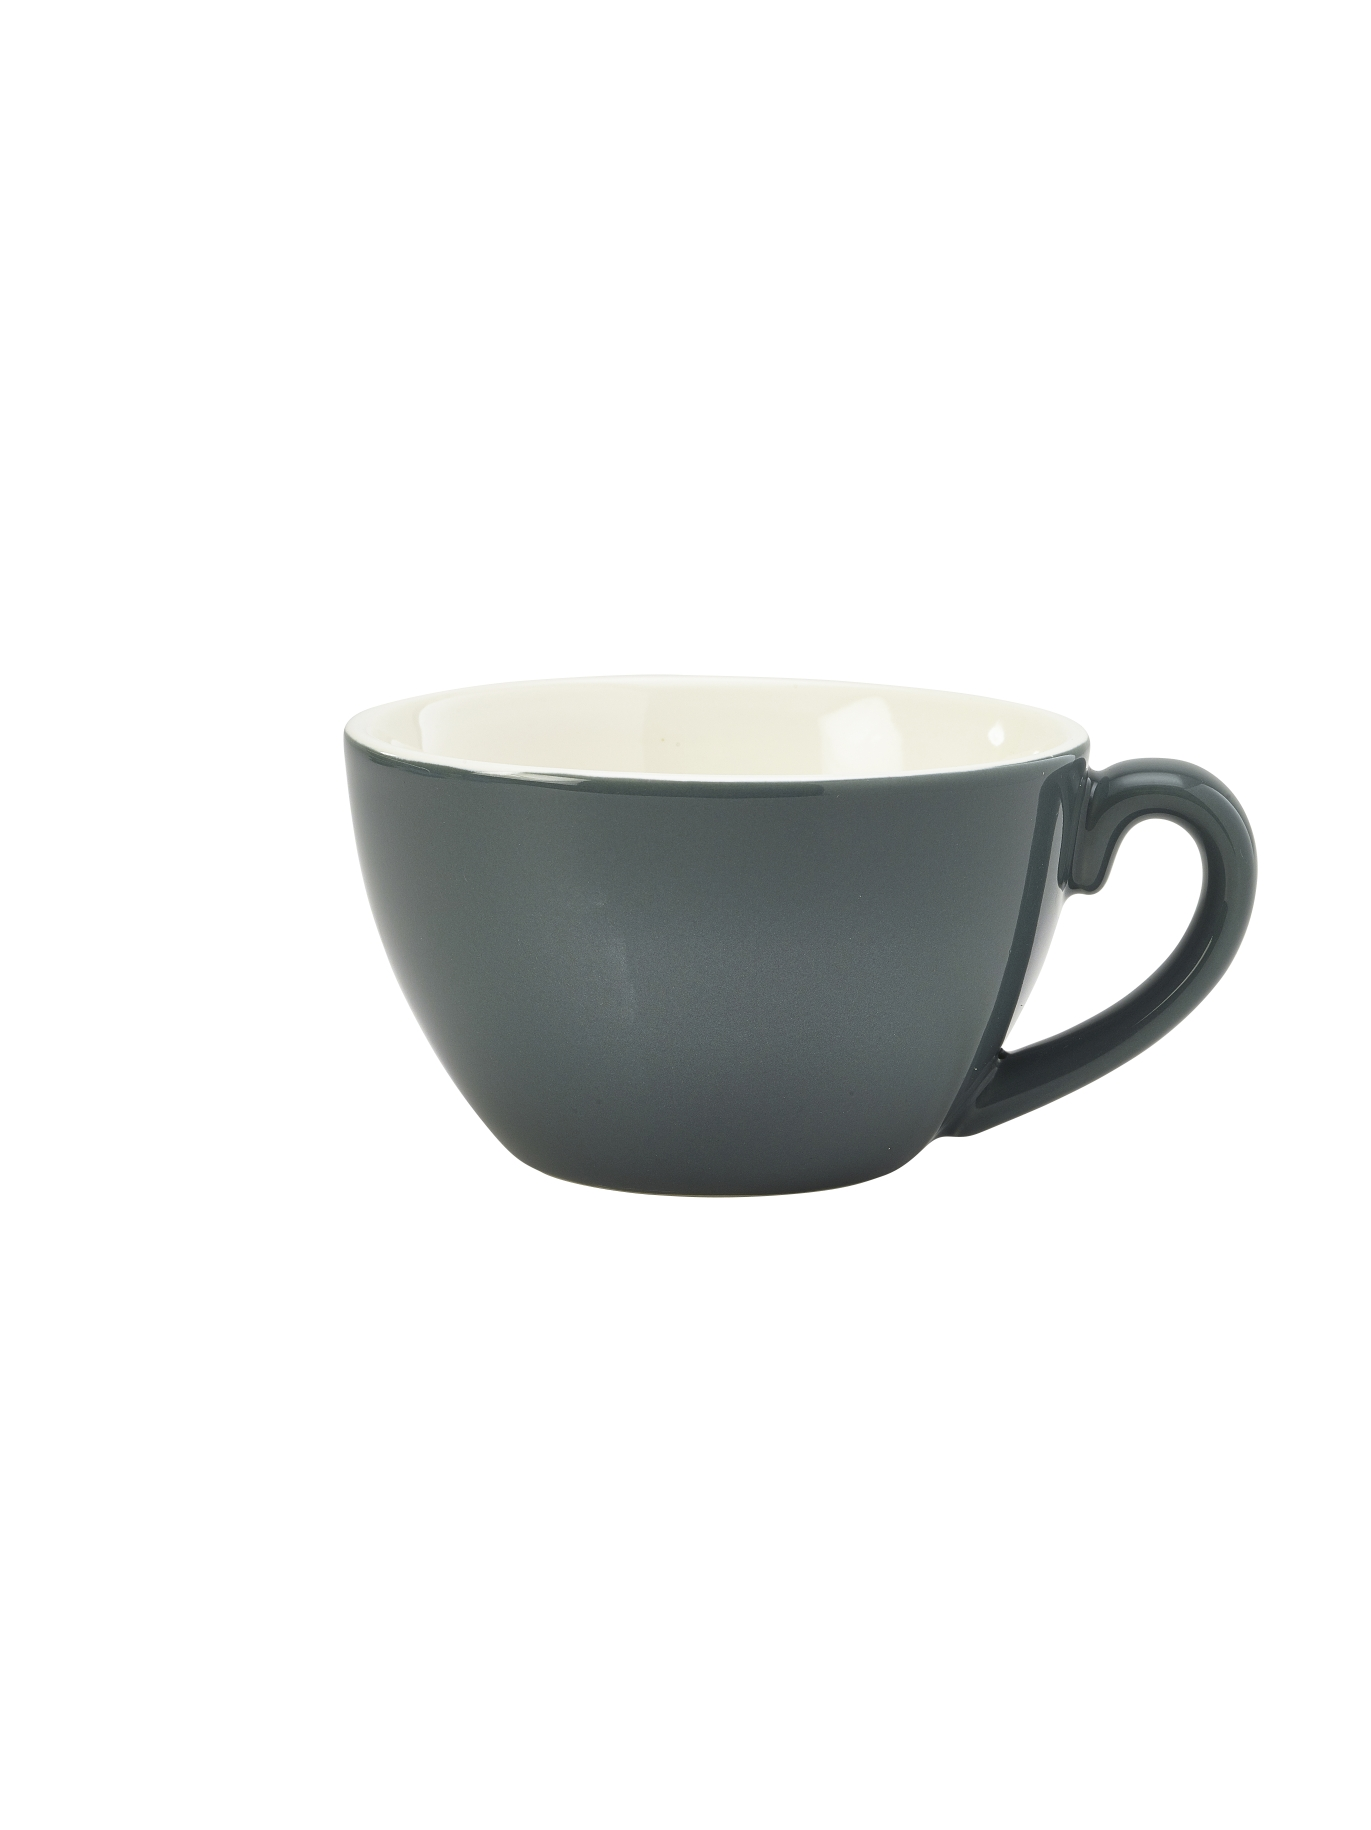 Genware Porcelain Bowl Shaped Cup 34cl Grey